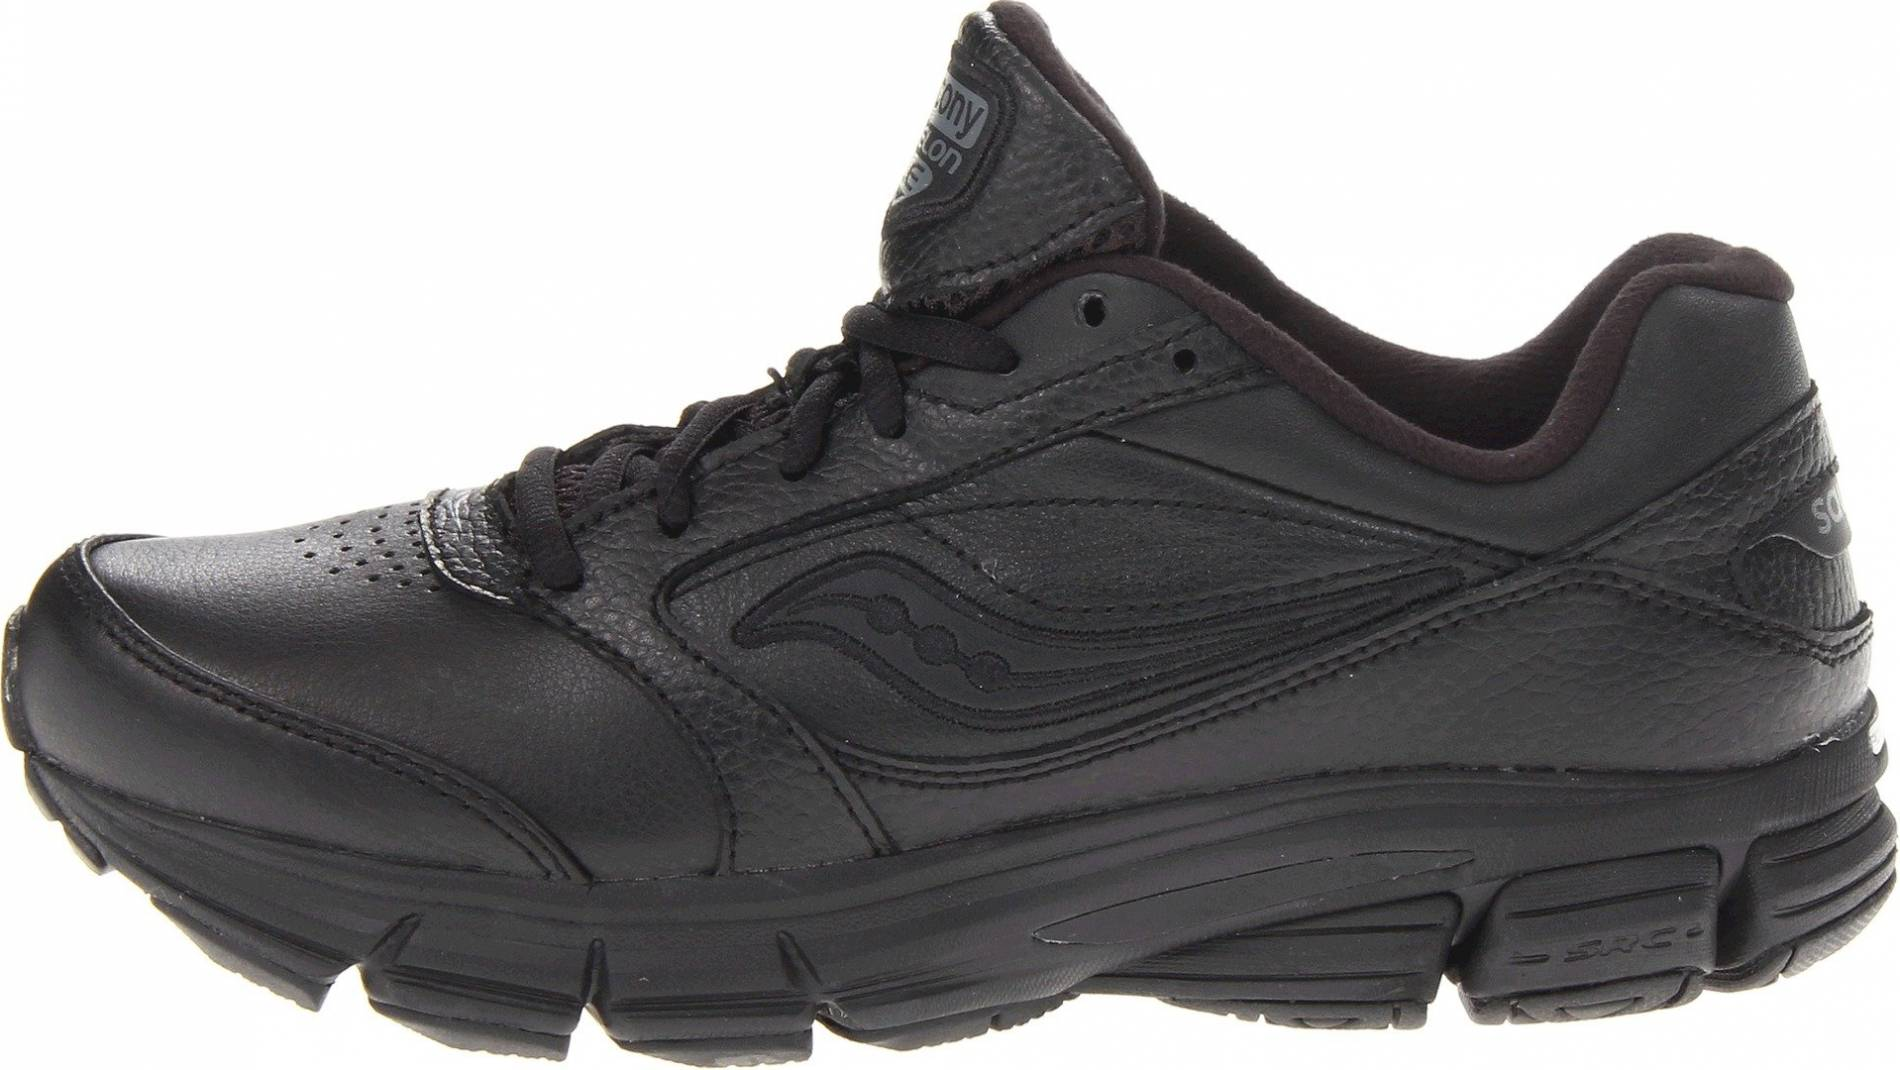 Save 26% on Saucony Walking Shoes (3